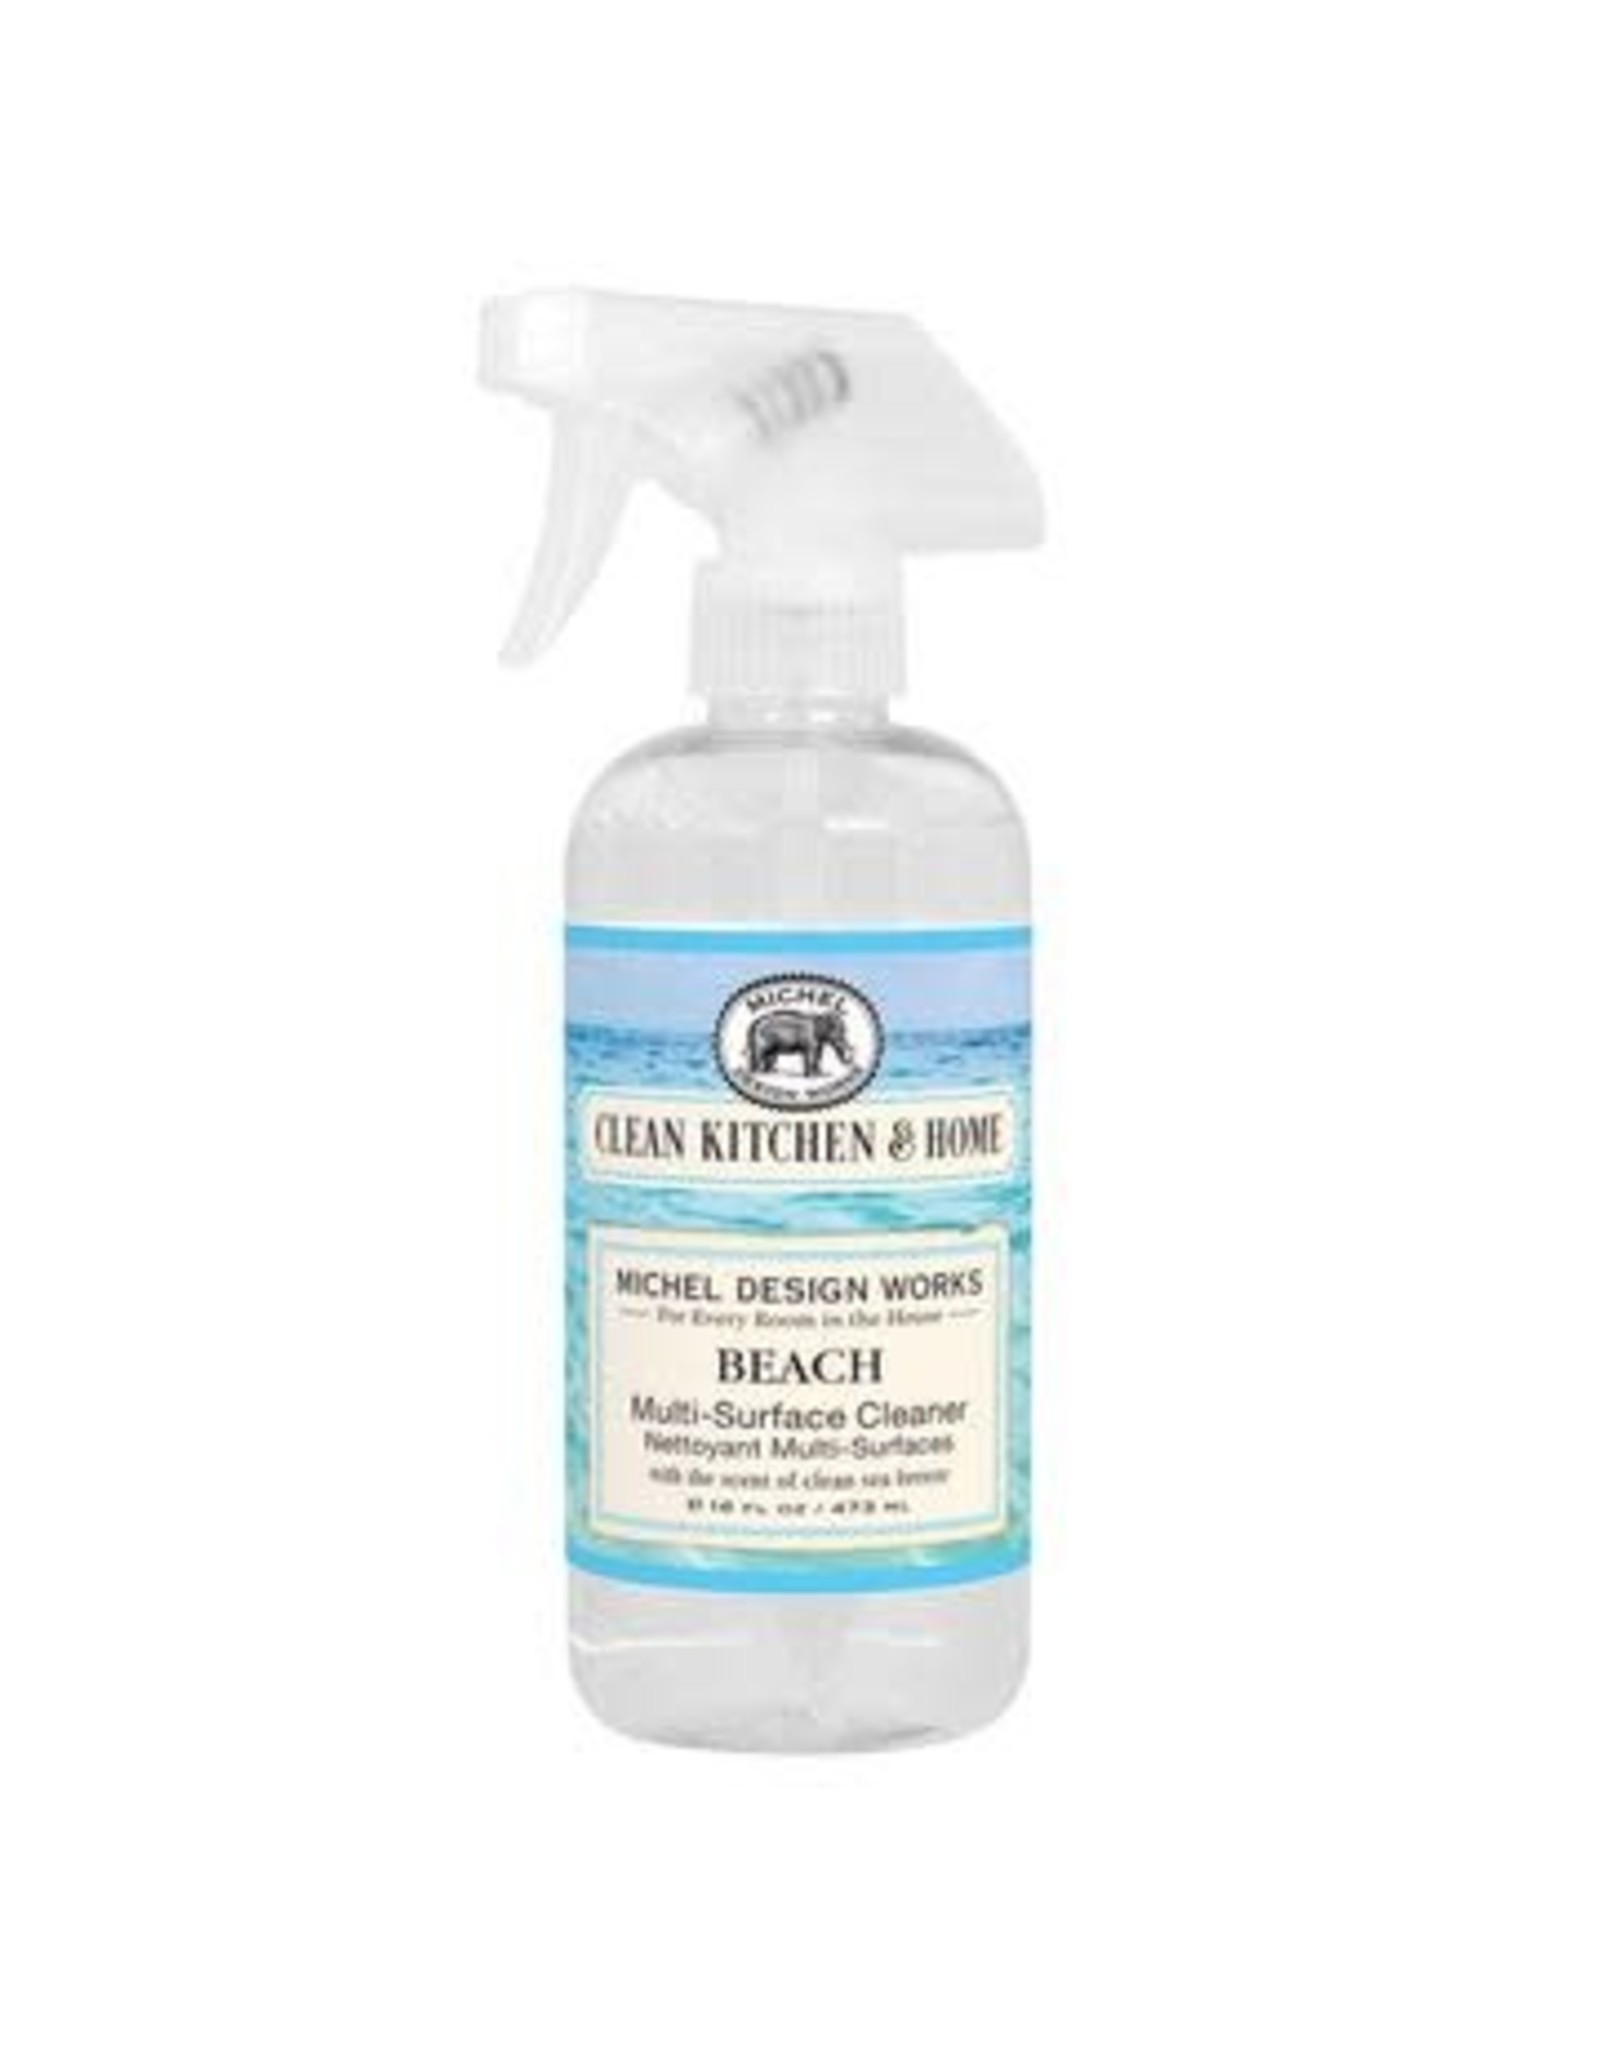 Michel Design Multisurface Cleaner, Beach, 16oz